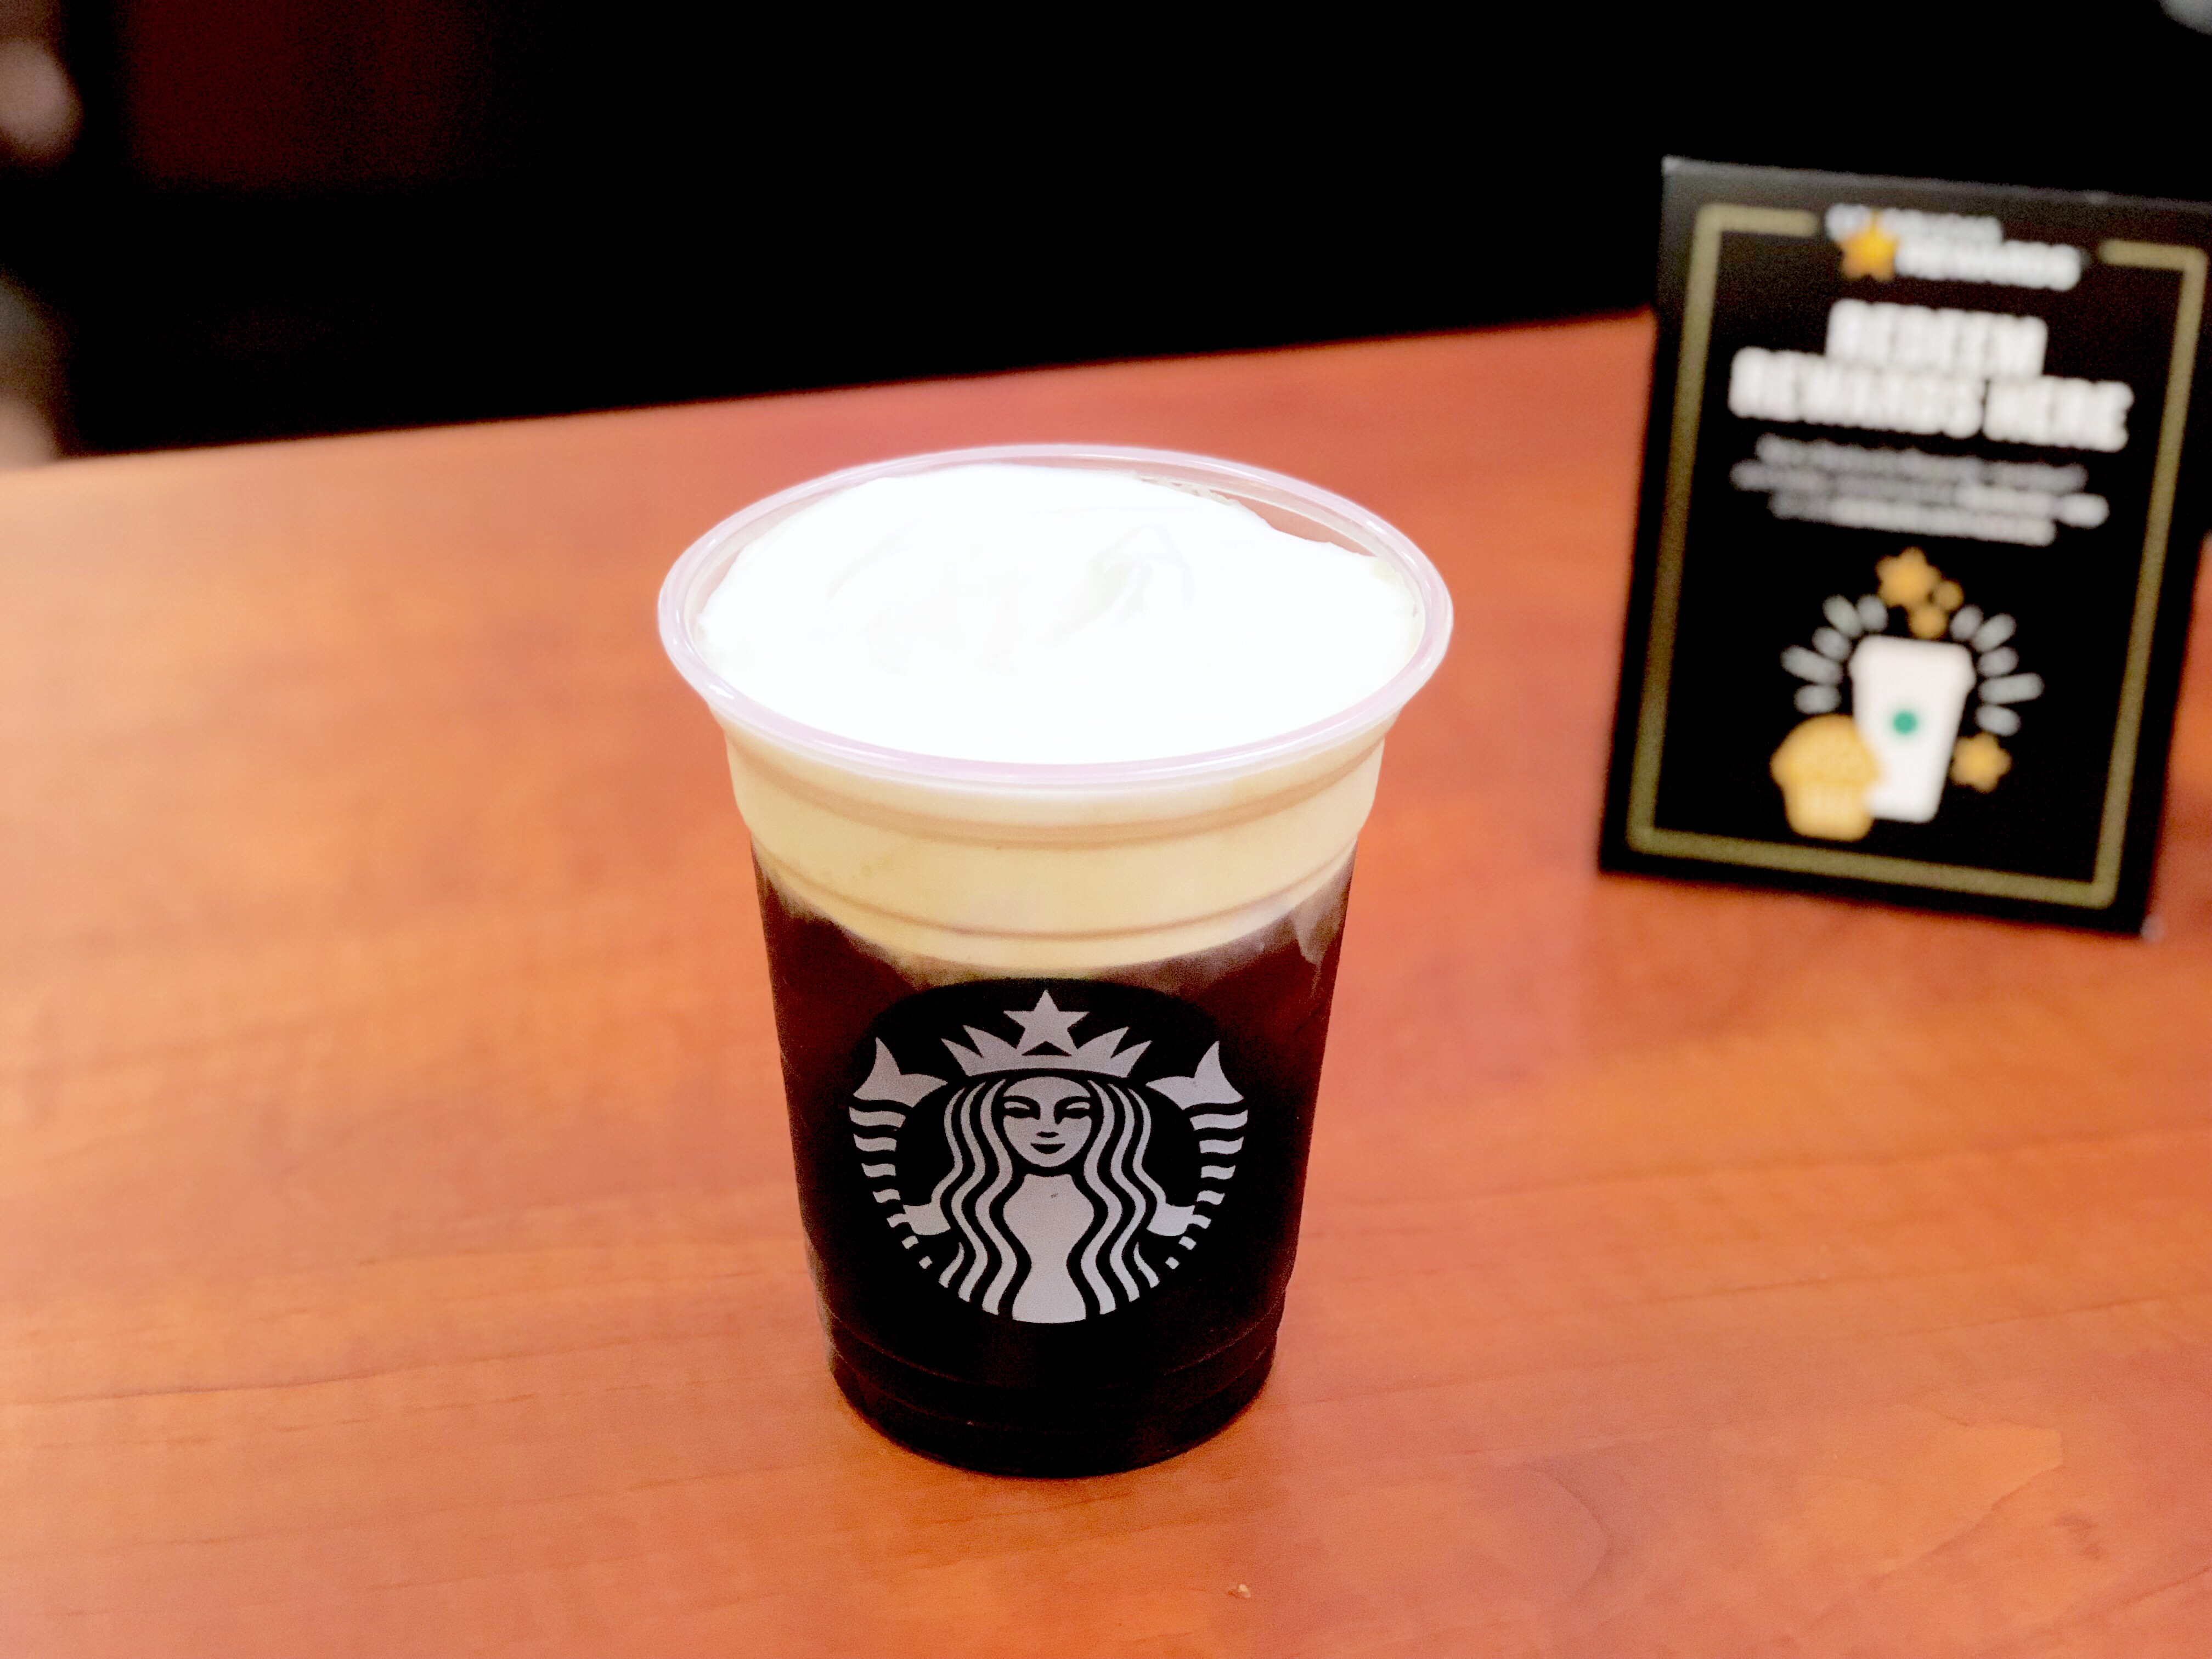 free starbucks coffee january – cup of coffee